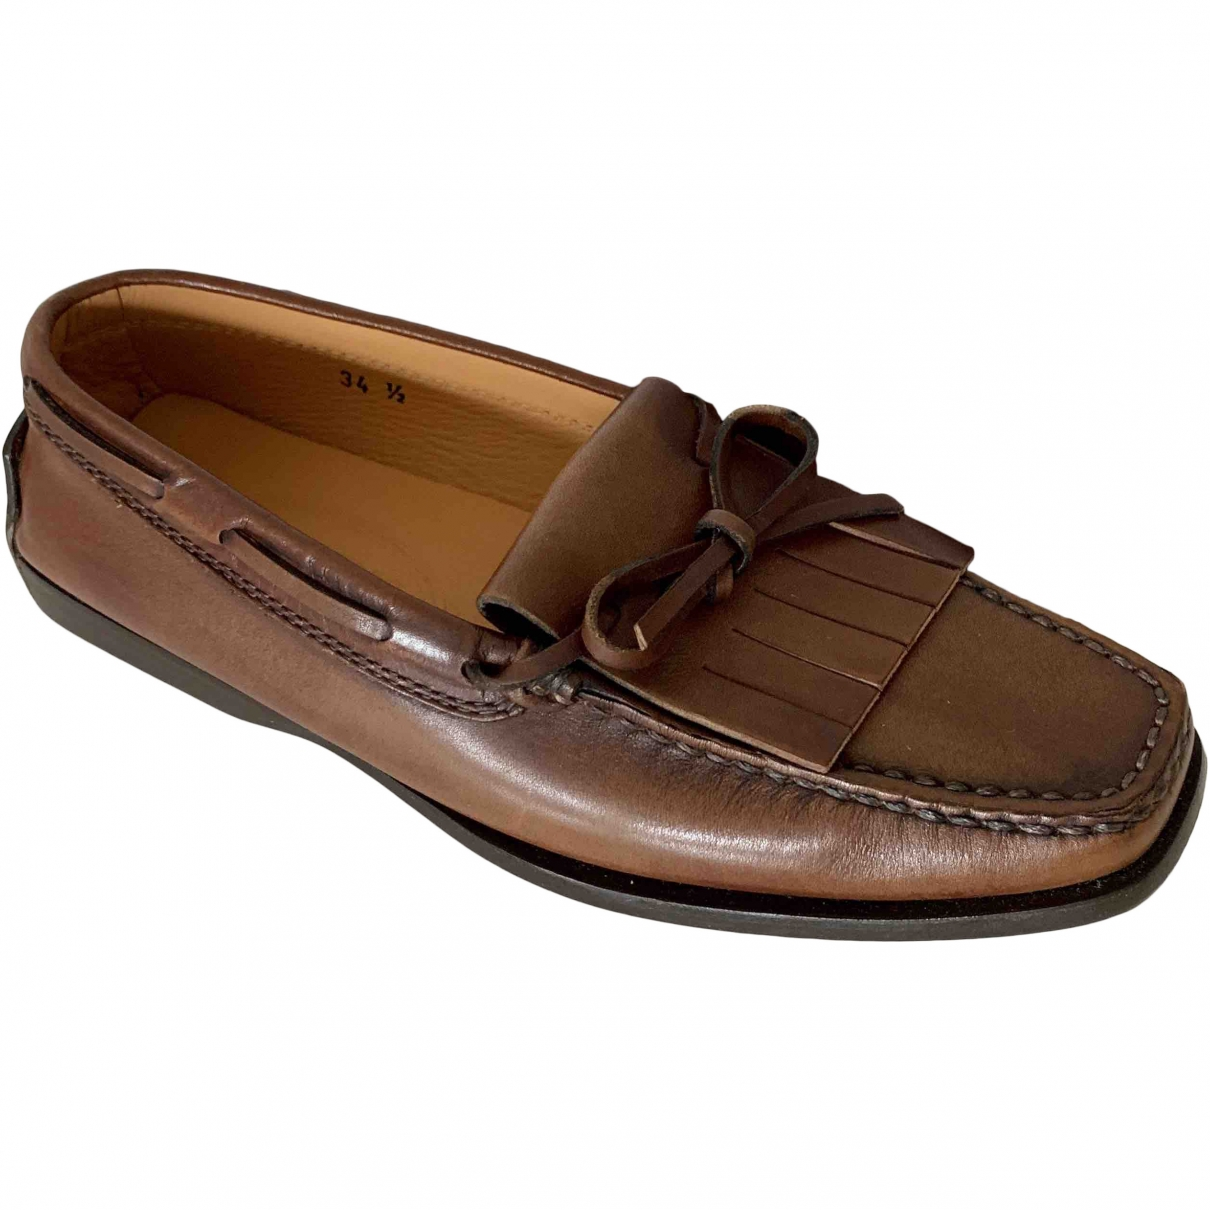 Tod's \N Brown Leather Flats for Women 34.5 EU